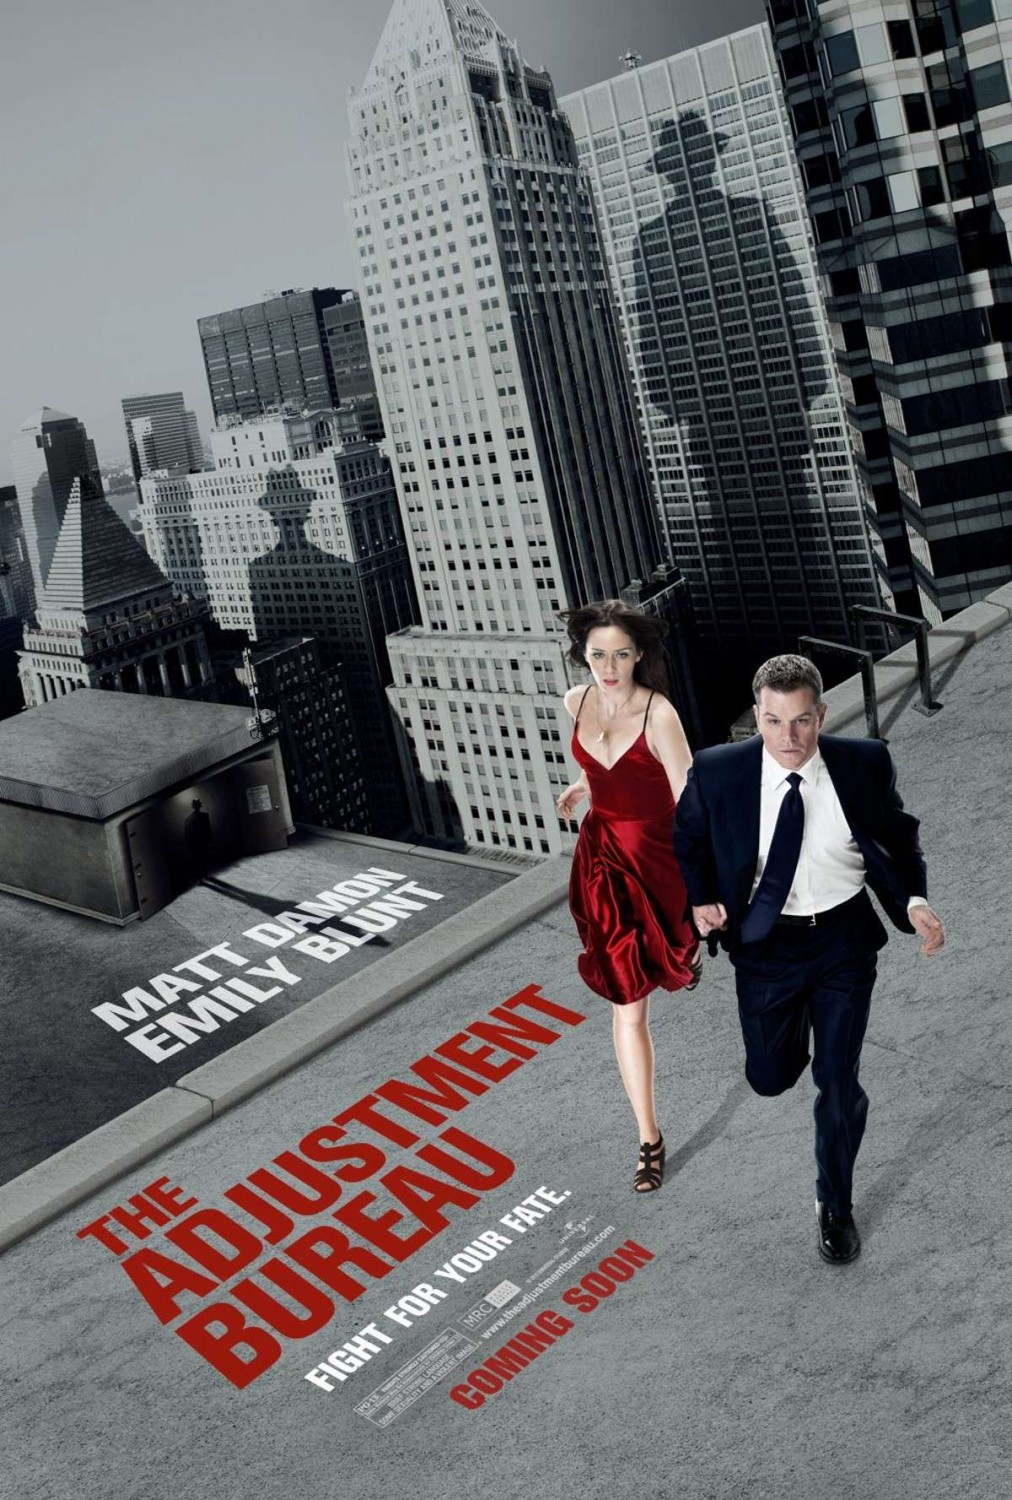 adjustment-bureau-poster.jpg